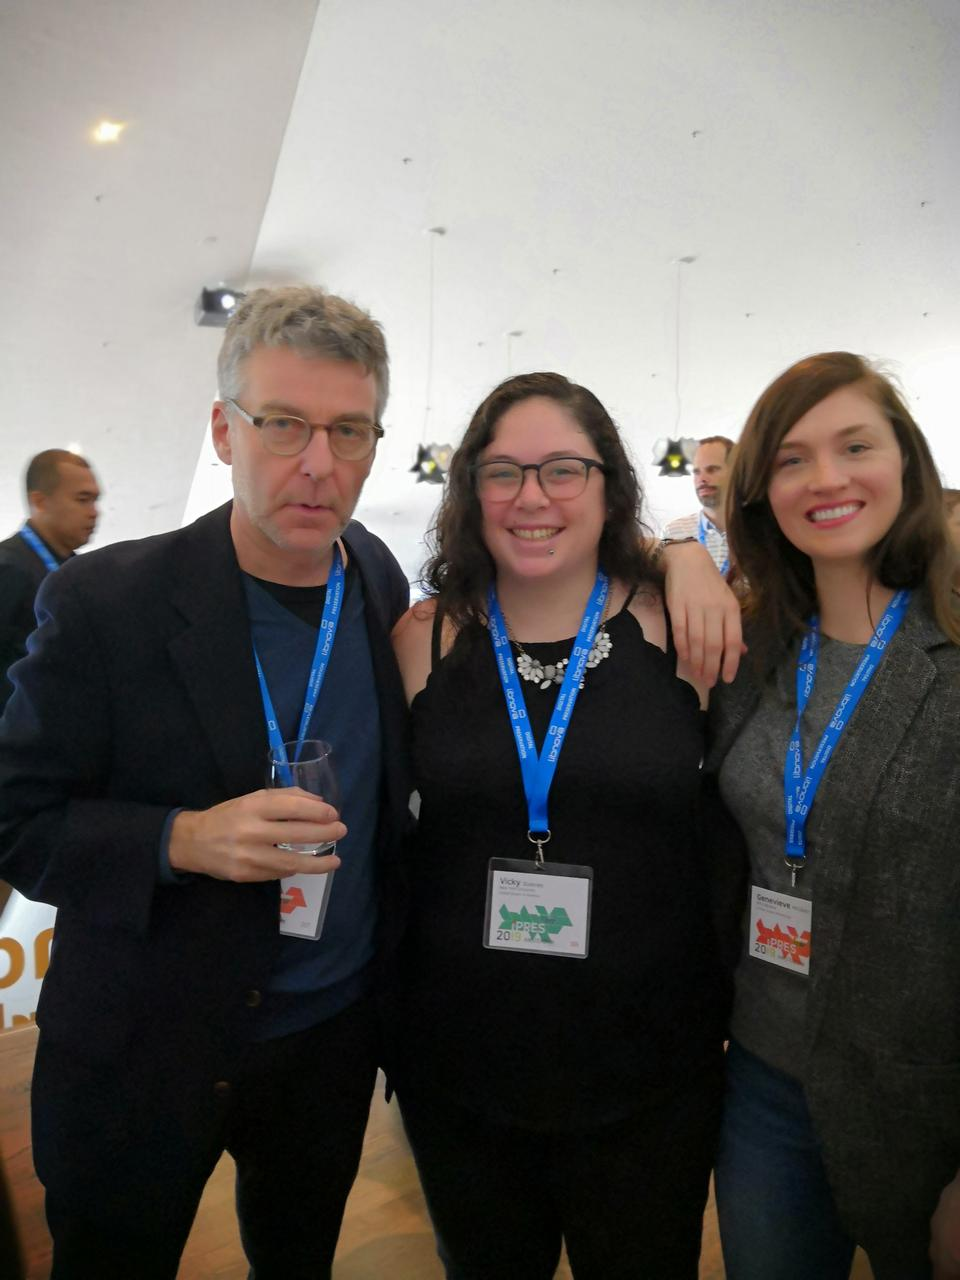 A picture of (left-to-right) David Millman, Vicky Steeves, and Genevieve Milliken.